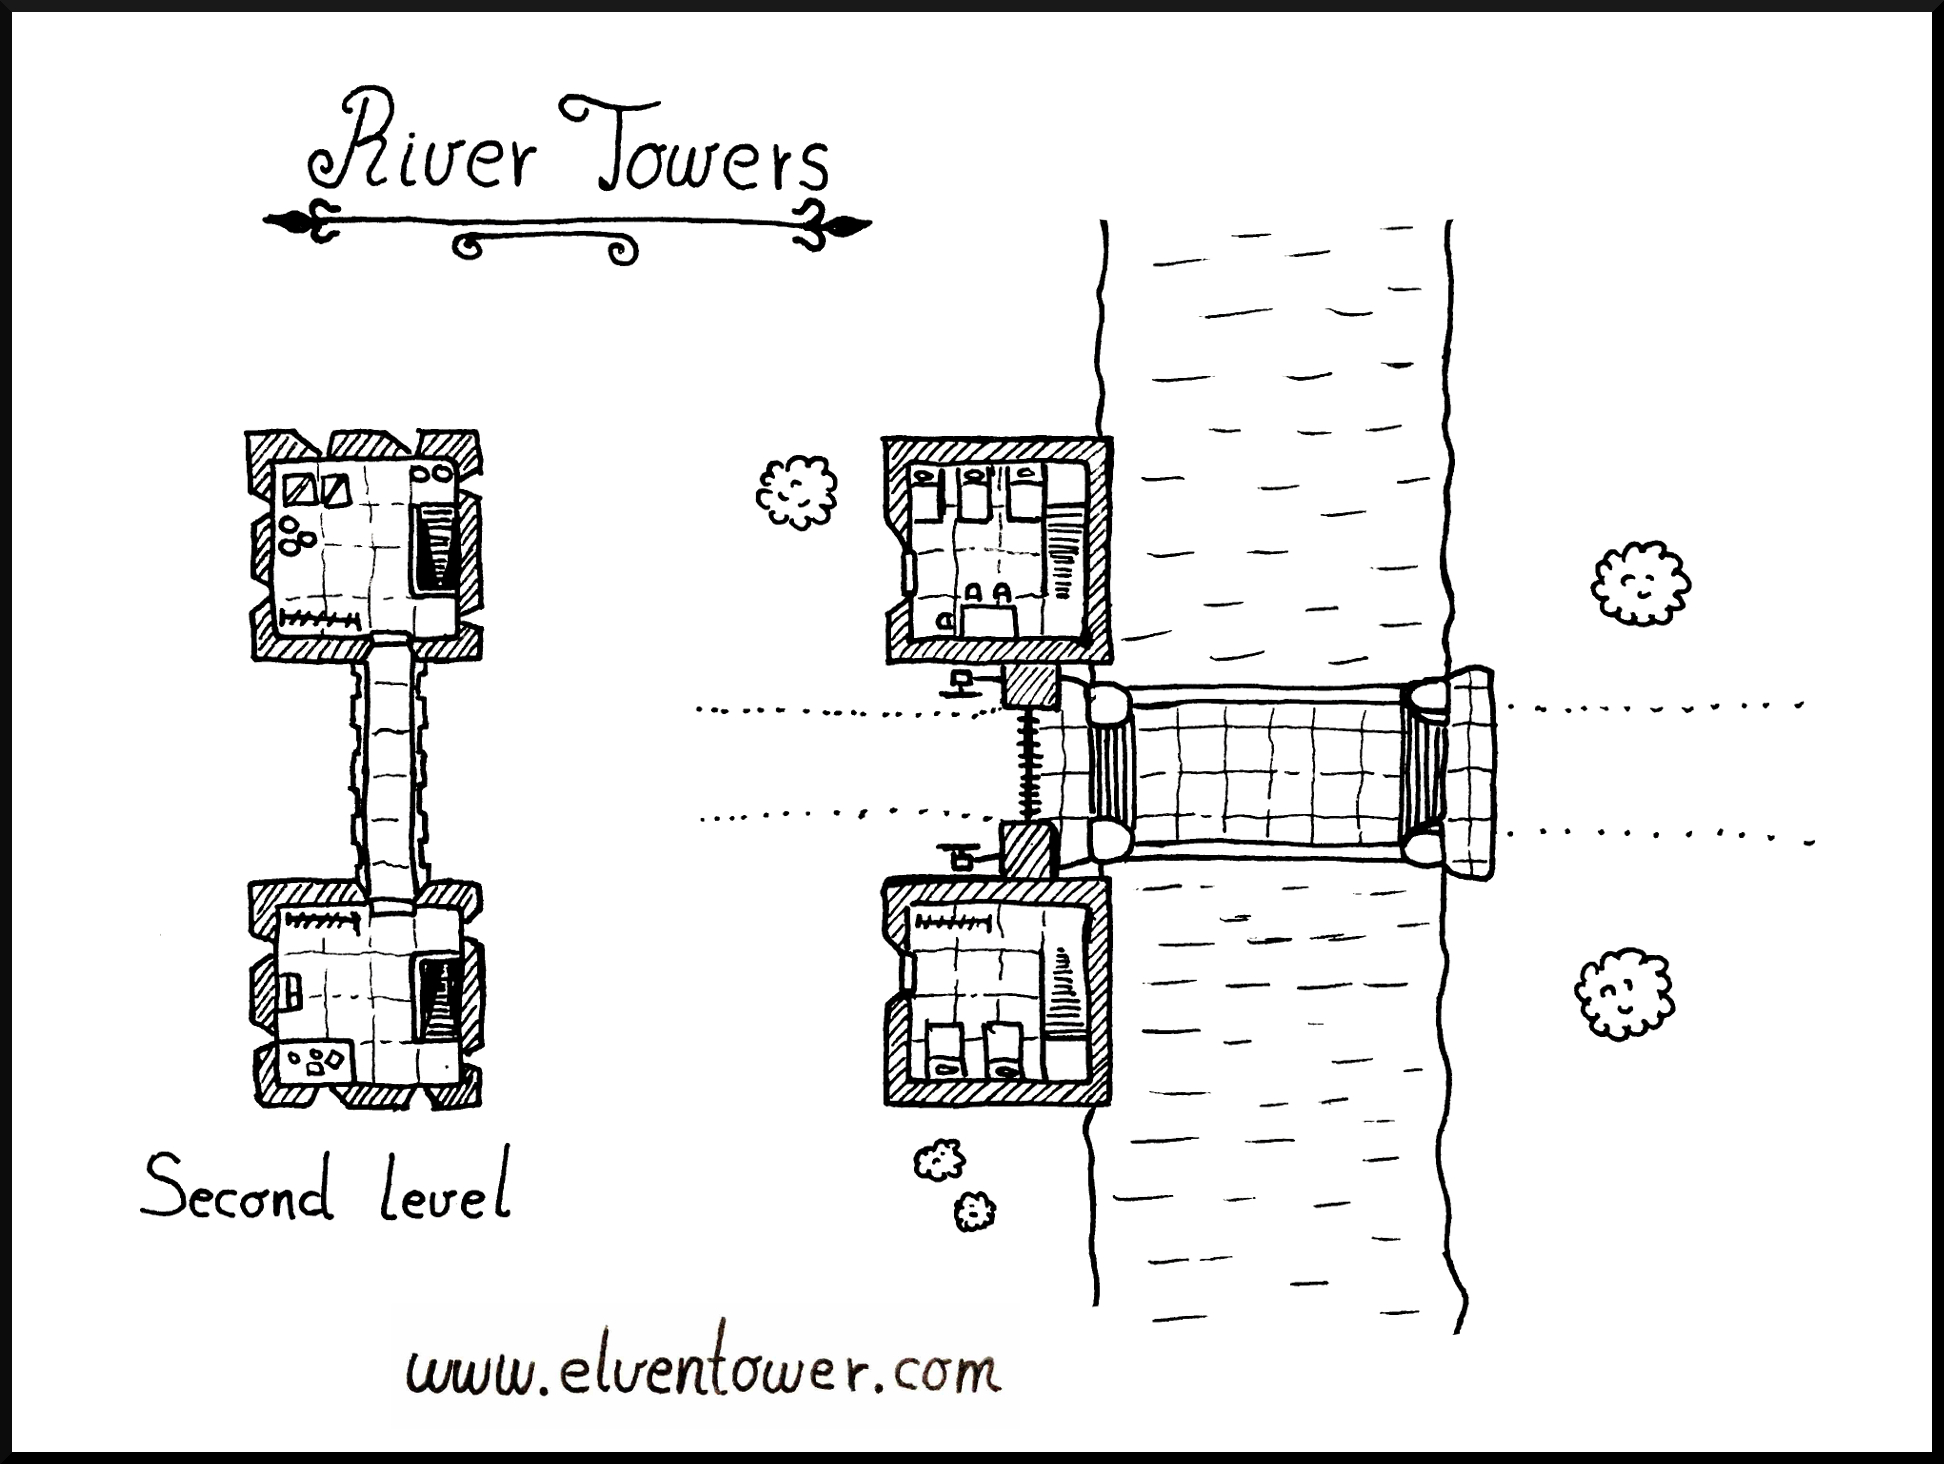 river-towers-l